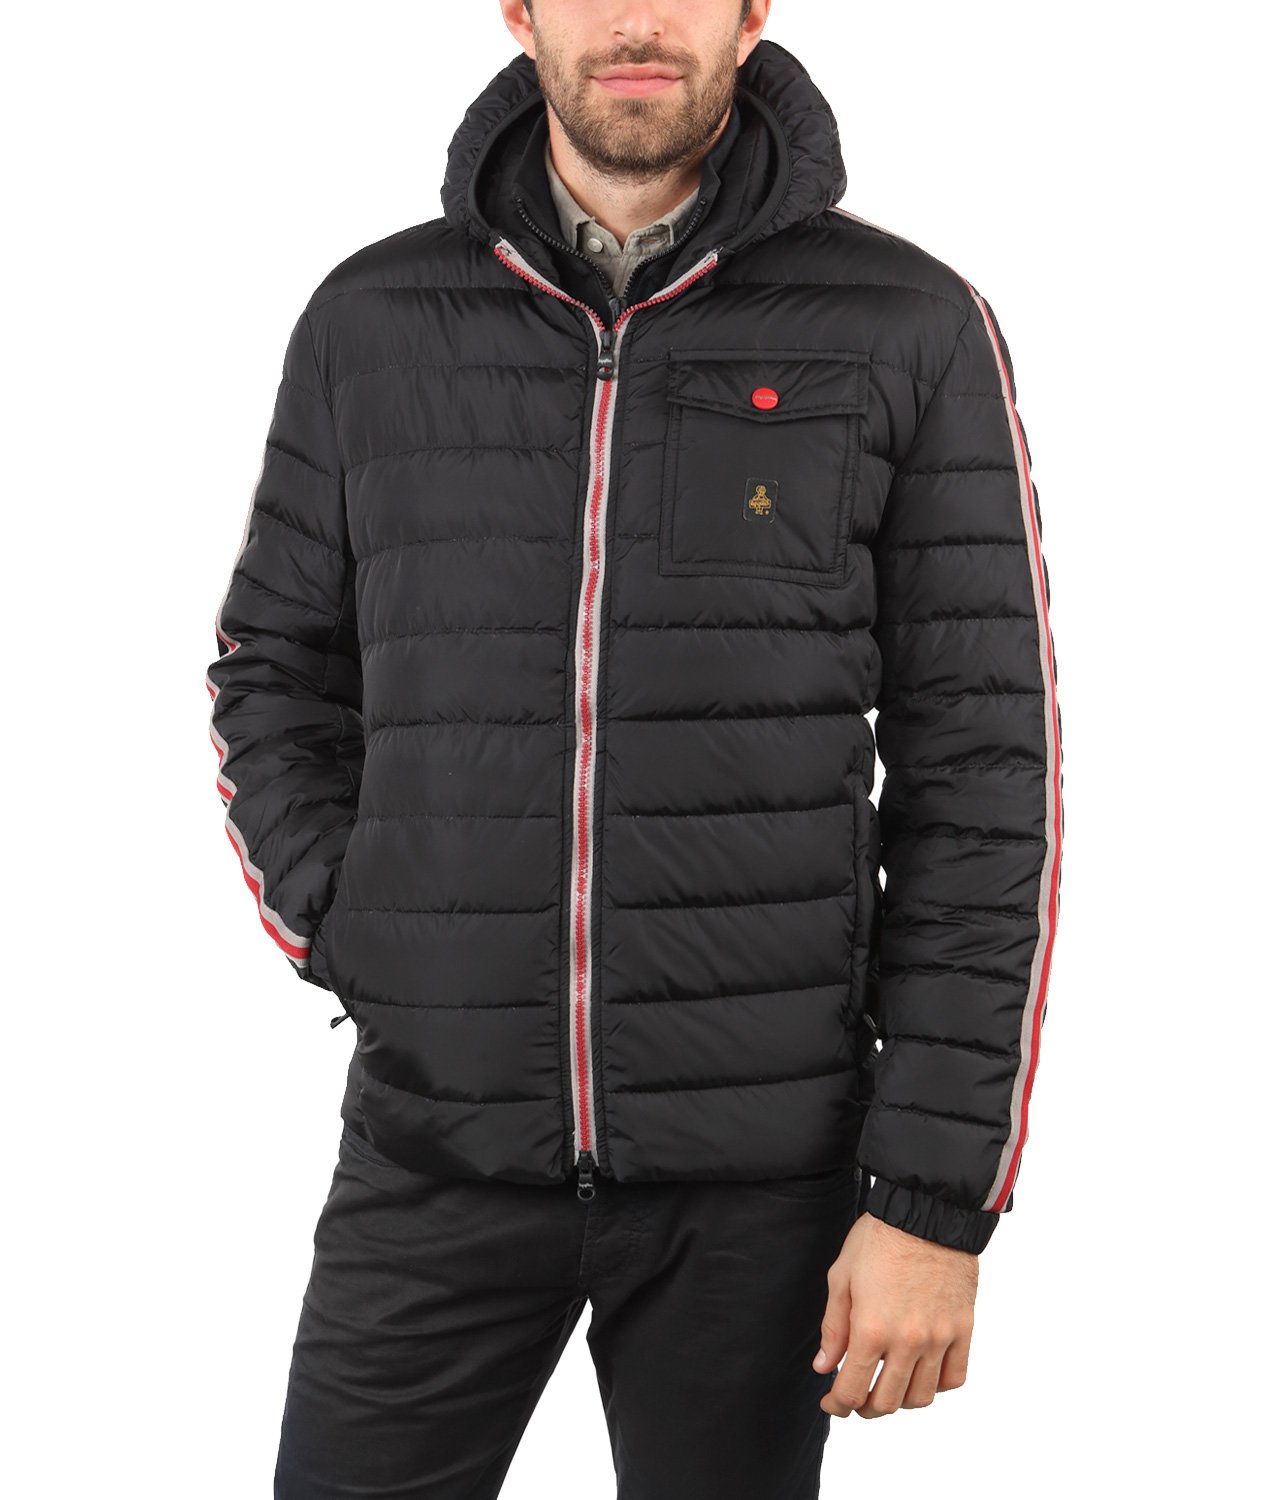 STRIPE REACH JACKET